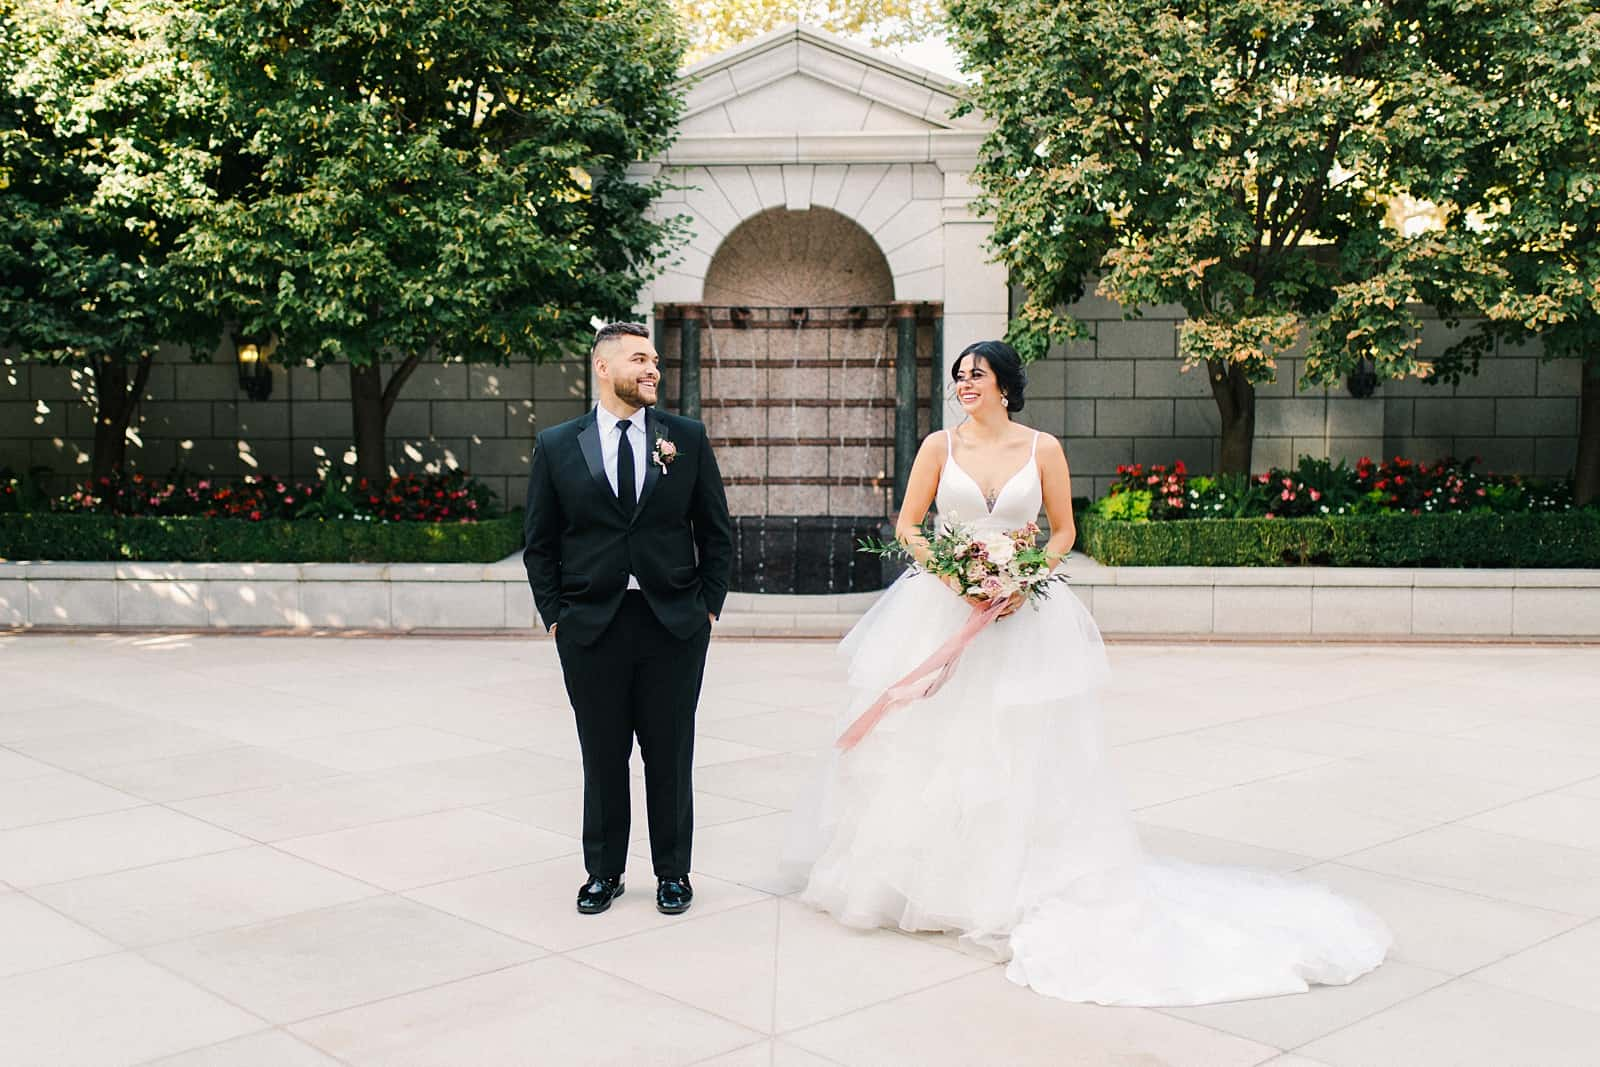 Bride and groom on their wedding day at the Grand America Hotel